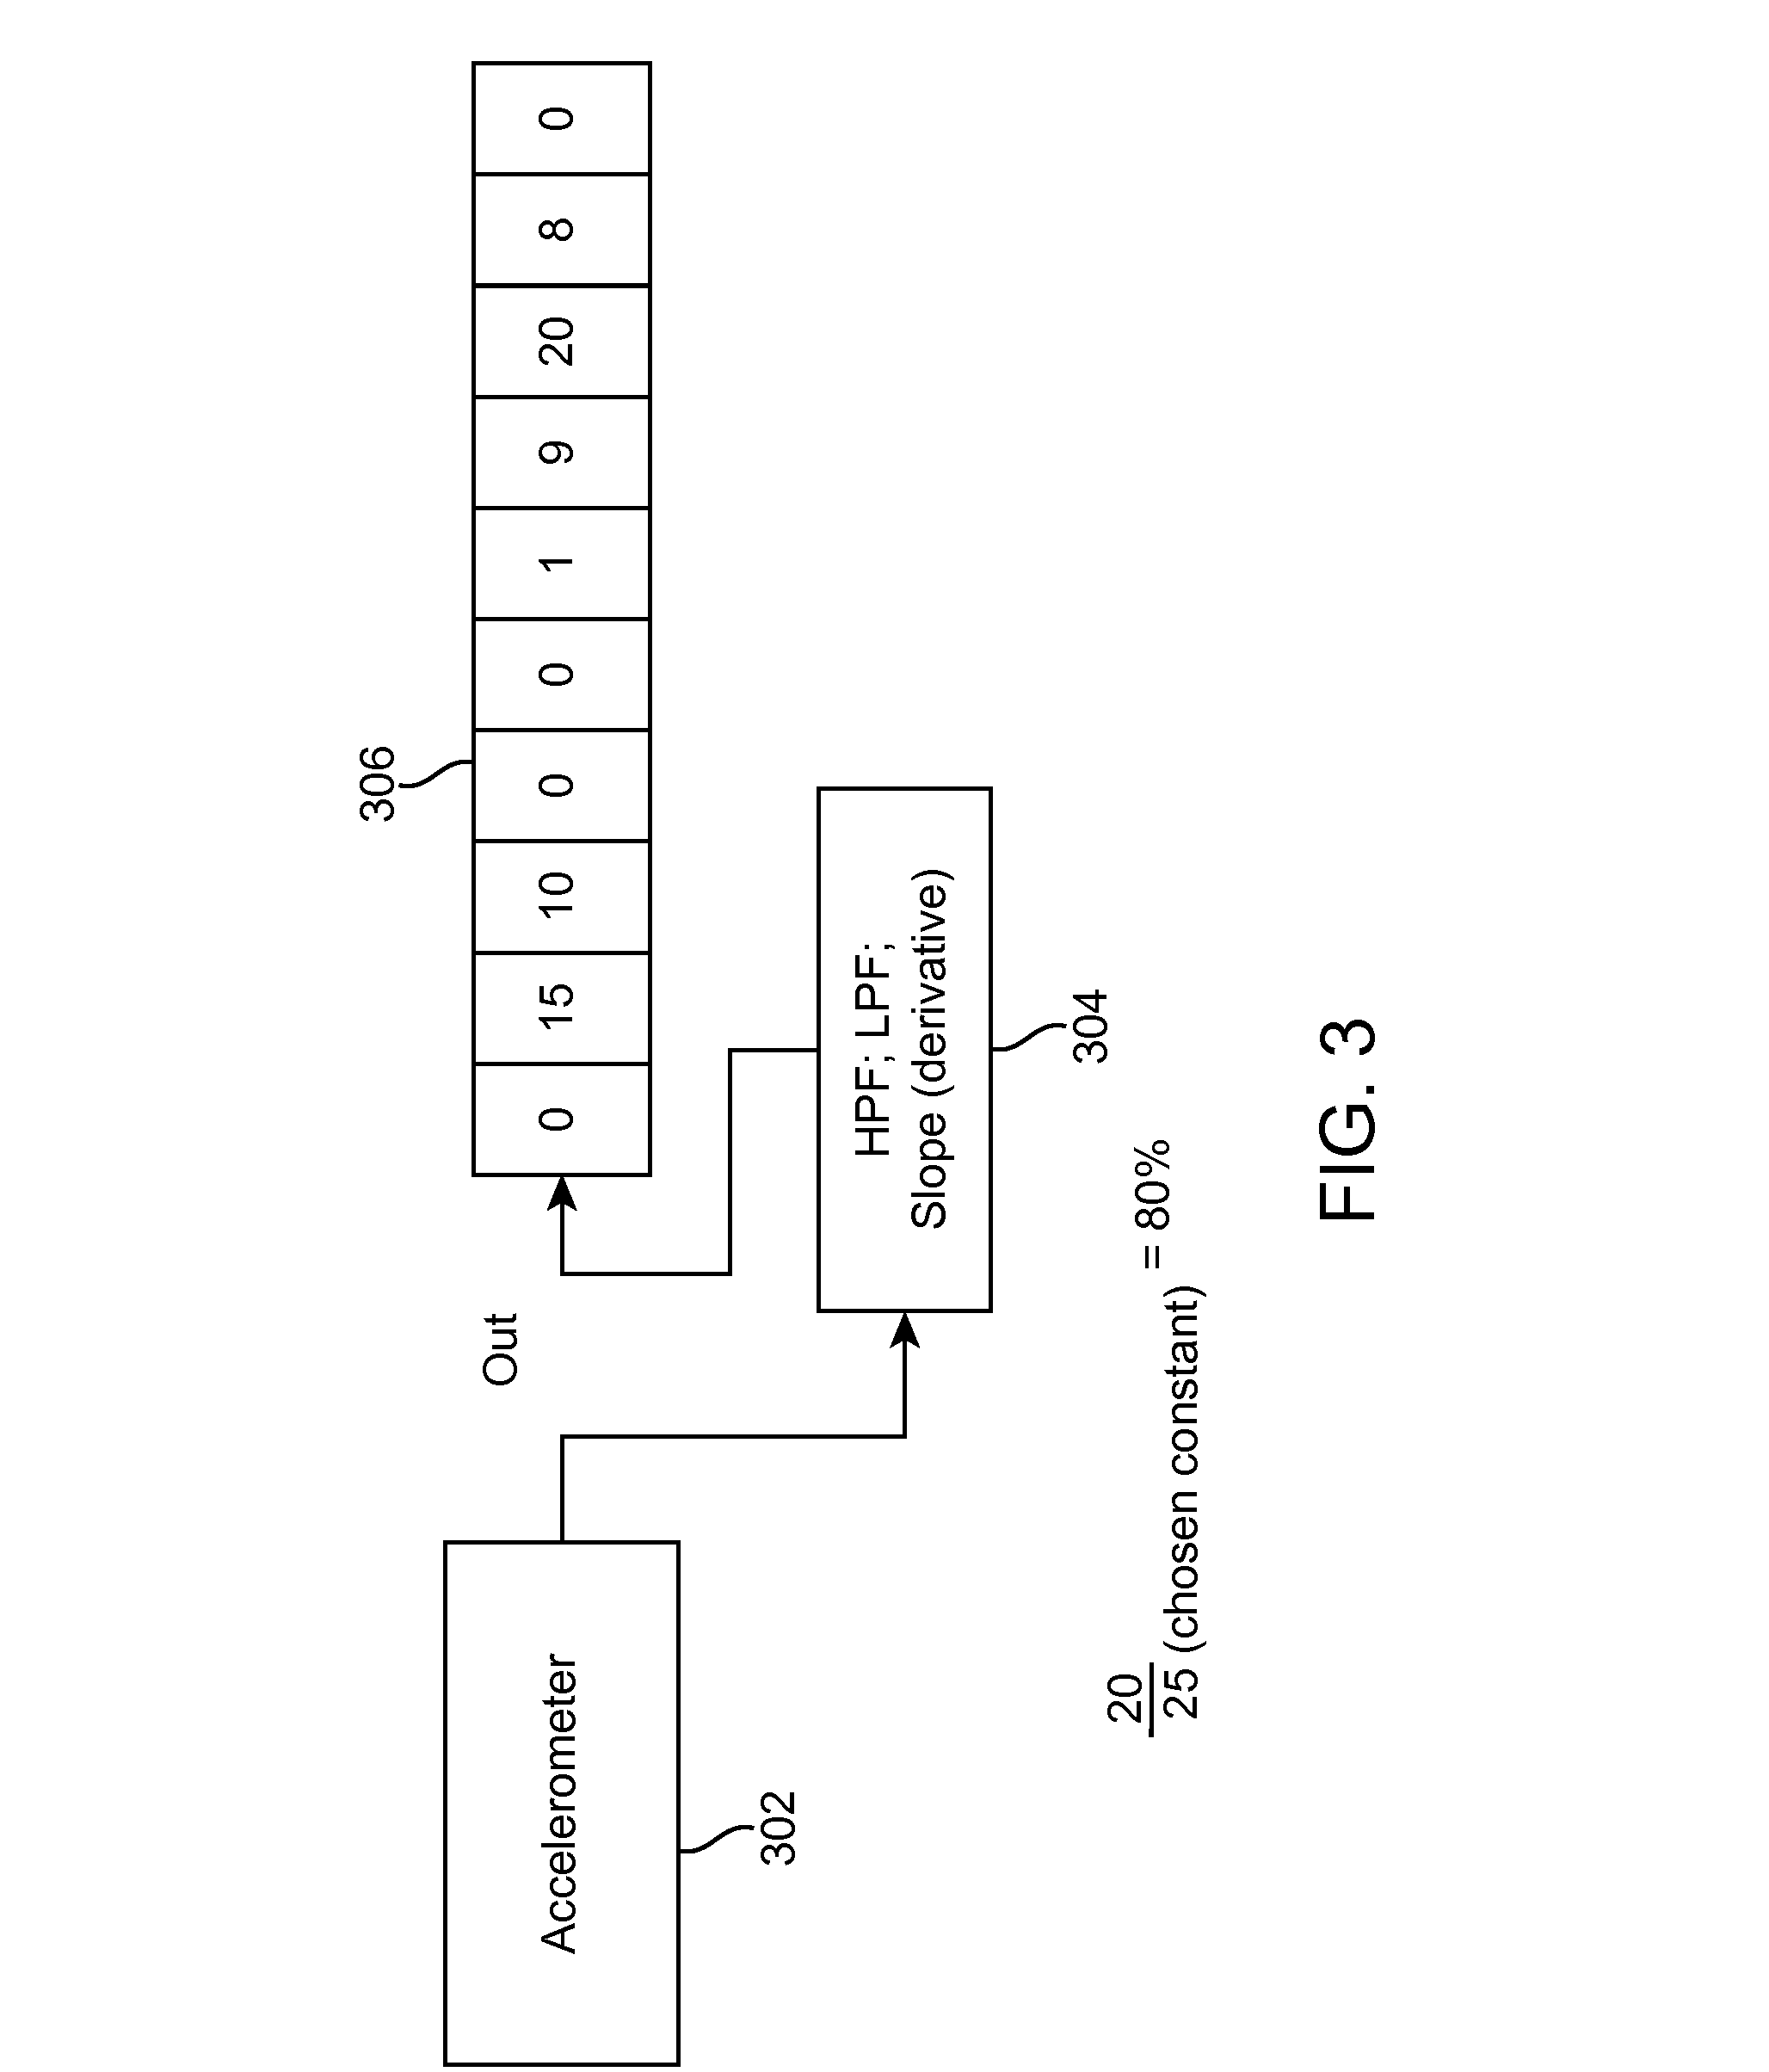 Patente Us20120050176 Accelerometer Determined Input Velocity Schematic Patent Drawing